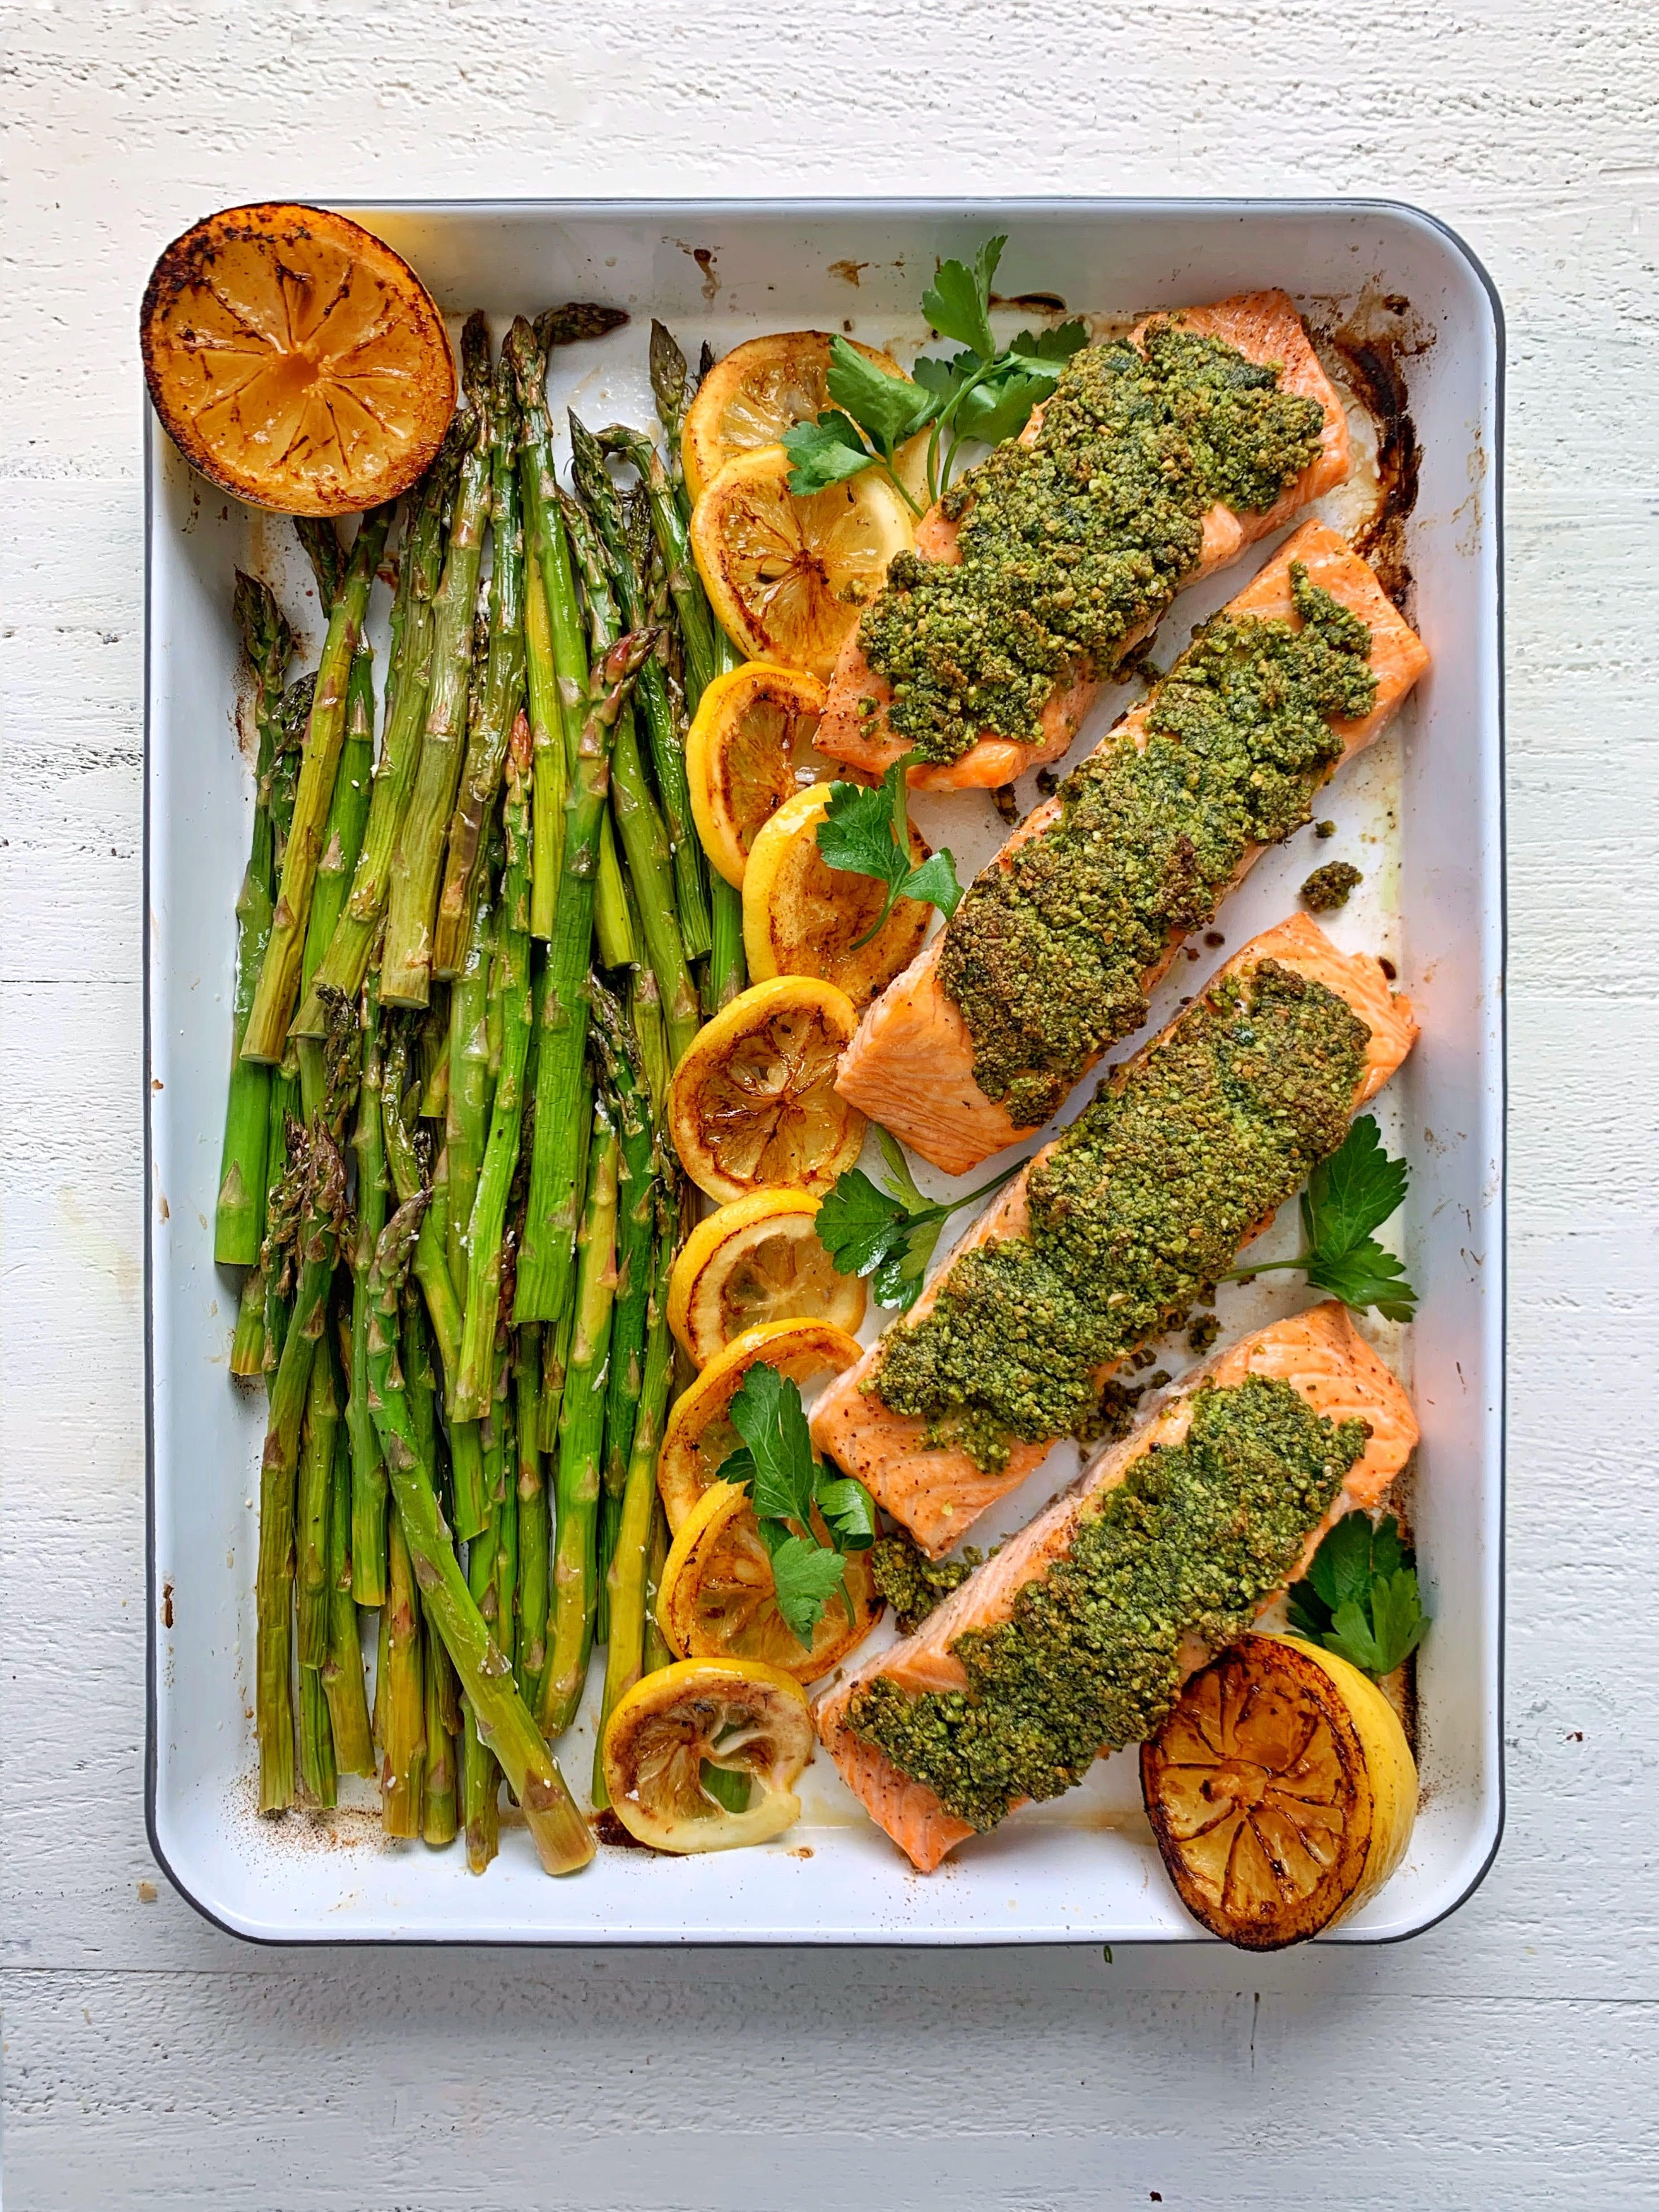 Pistachio Crusted Sheet Pan Salmon with Roasted Asparagus and Lemon